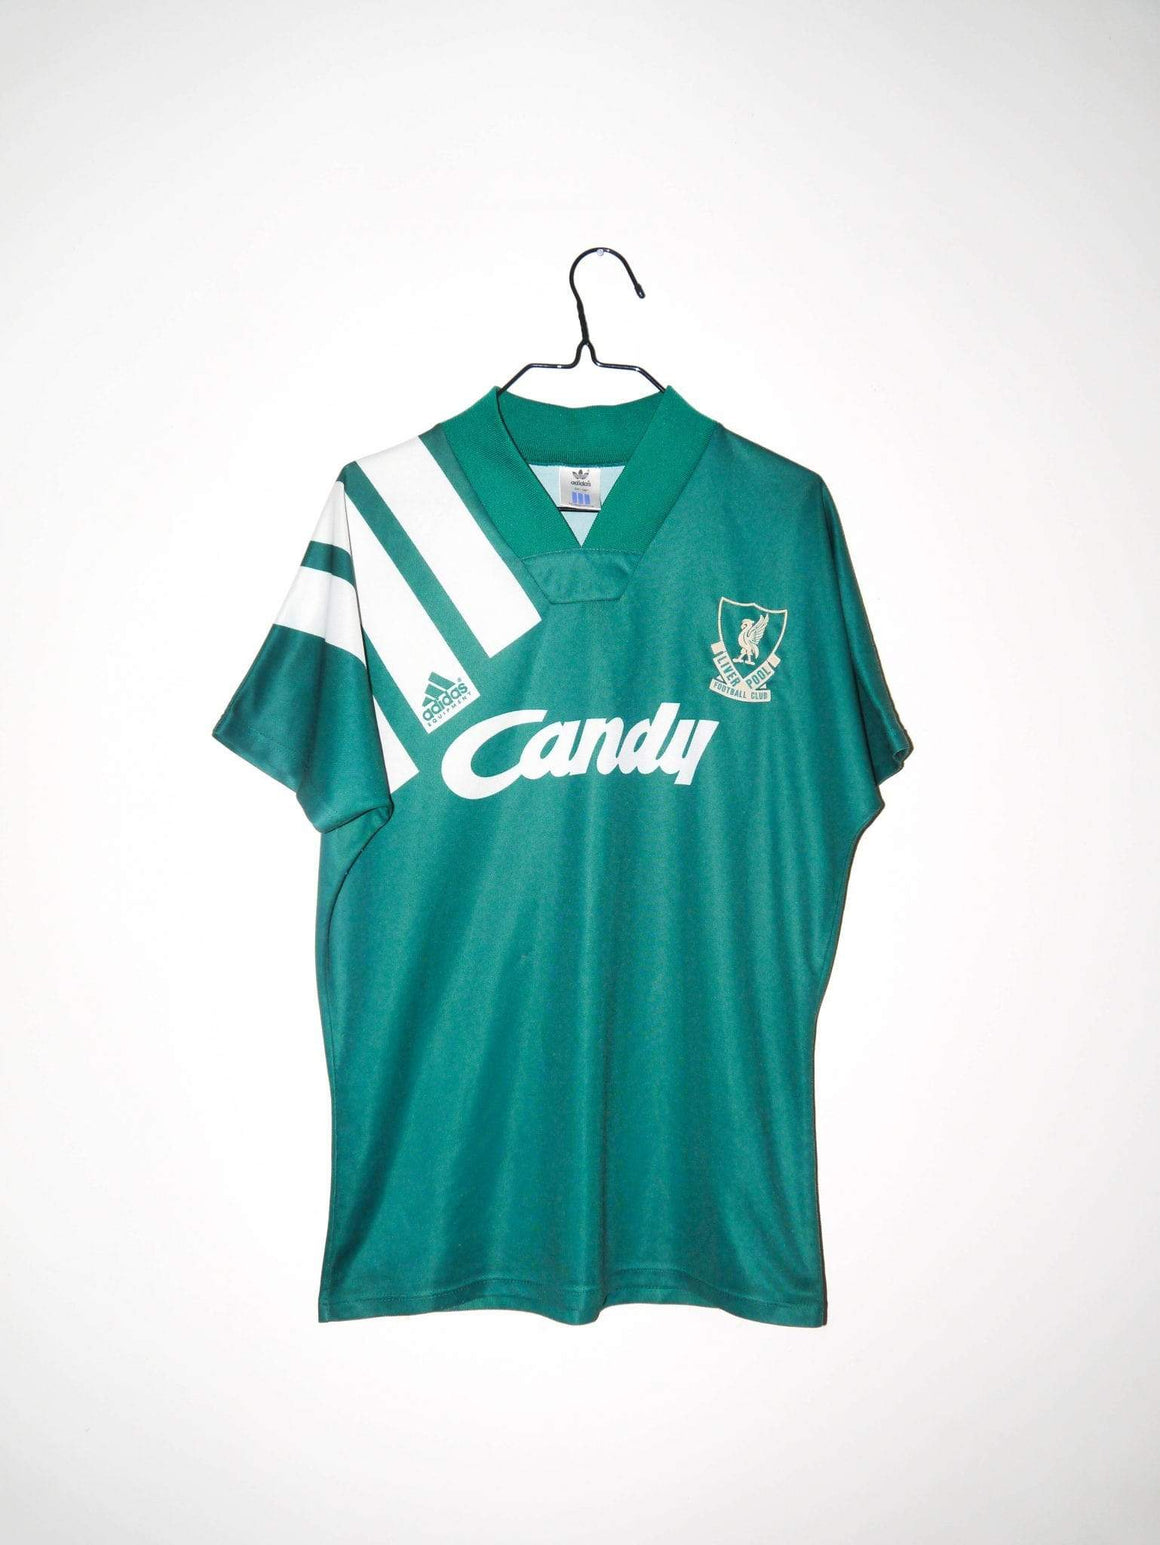 RB Jerseys 1991-92 Liverpool FC away shirt